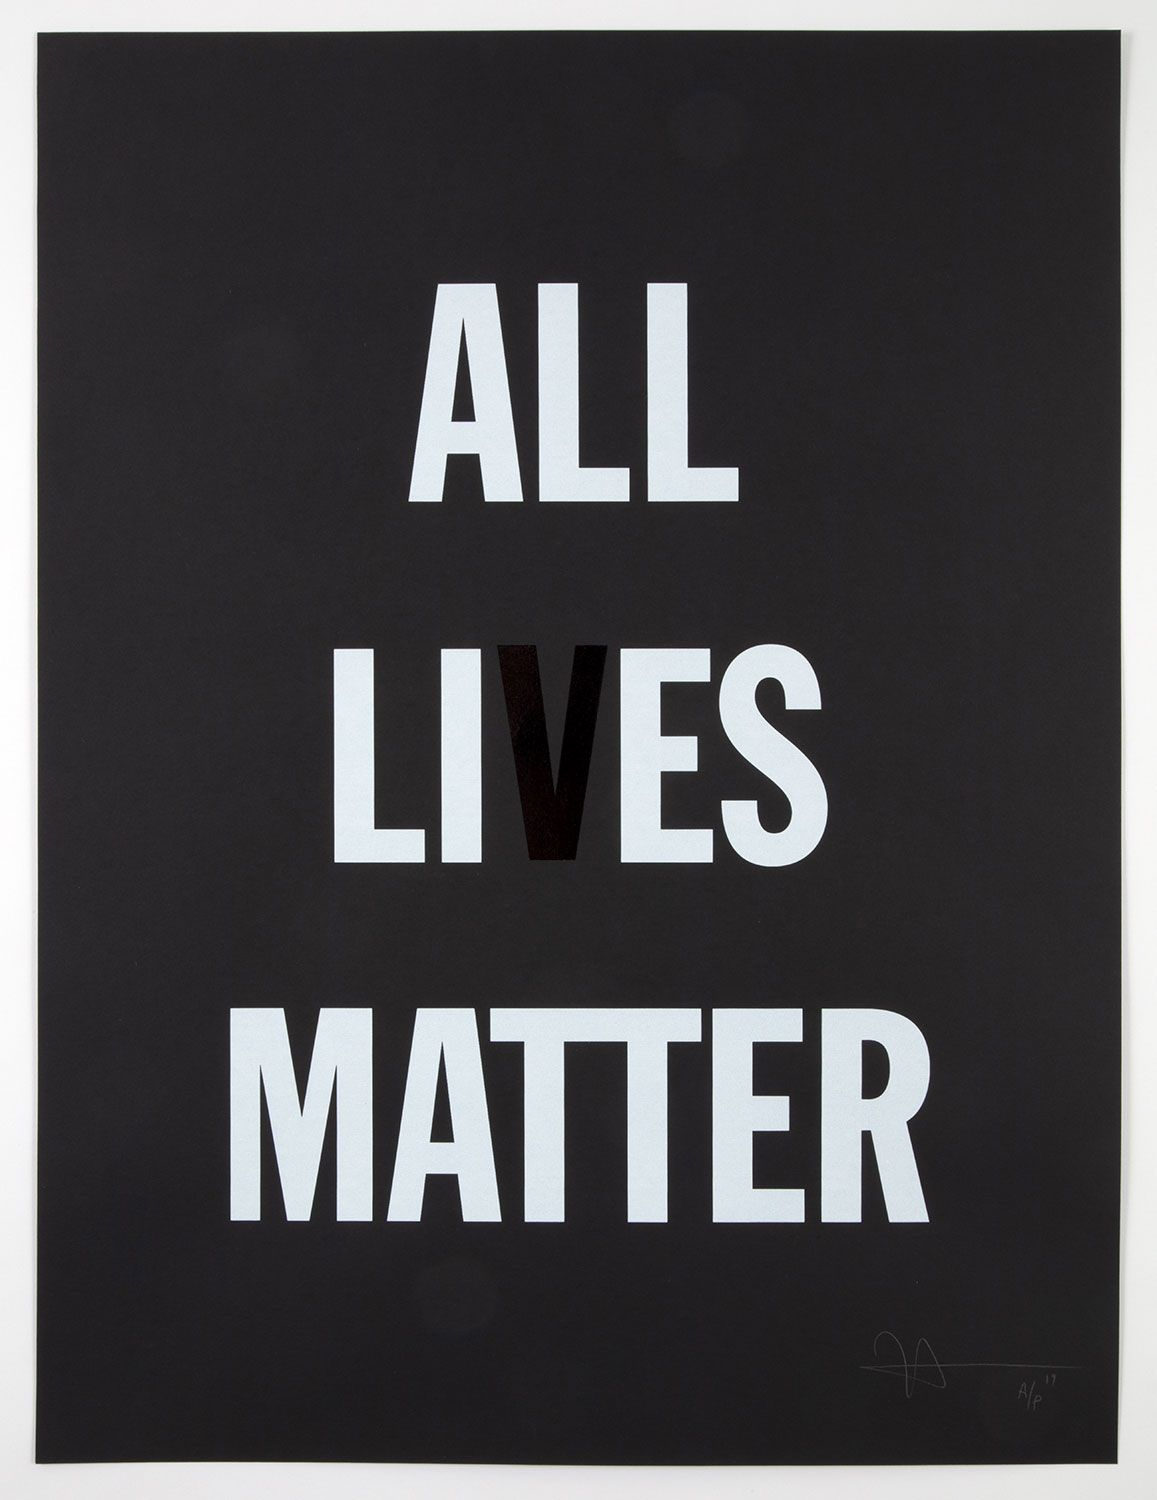 You Can Buy a Print of New York's 'ALL LI ES MATTER' Cover